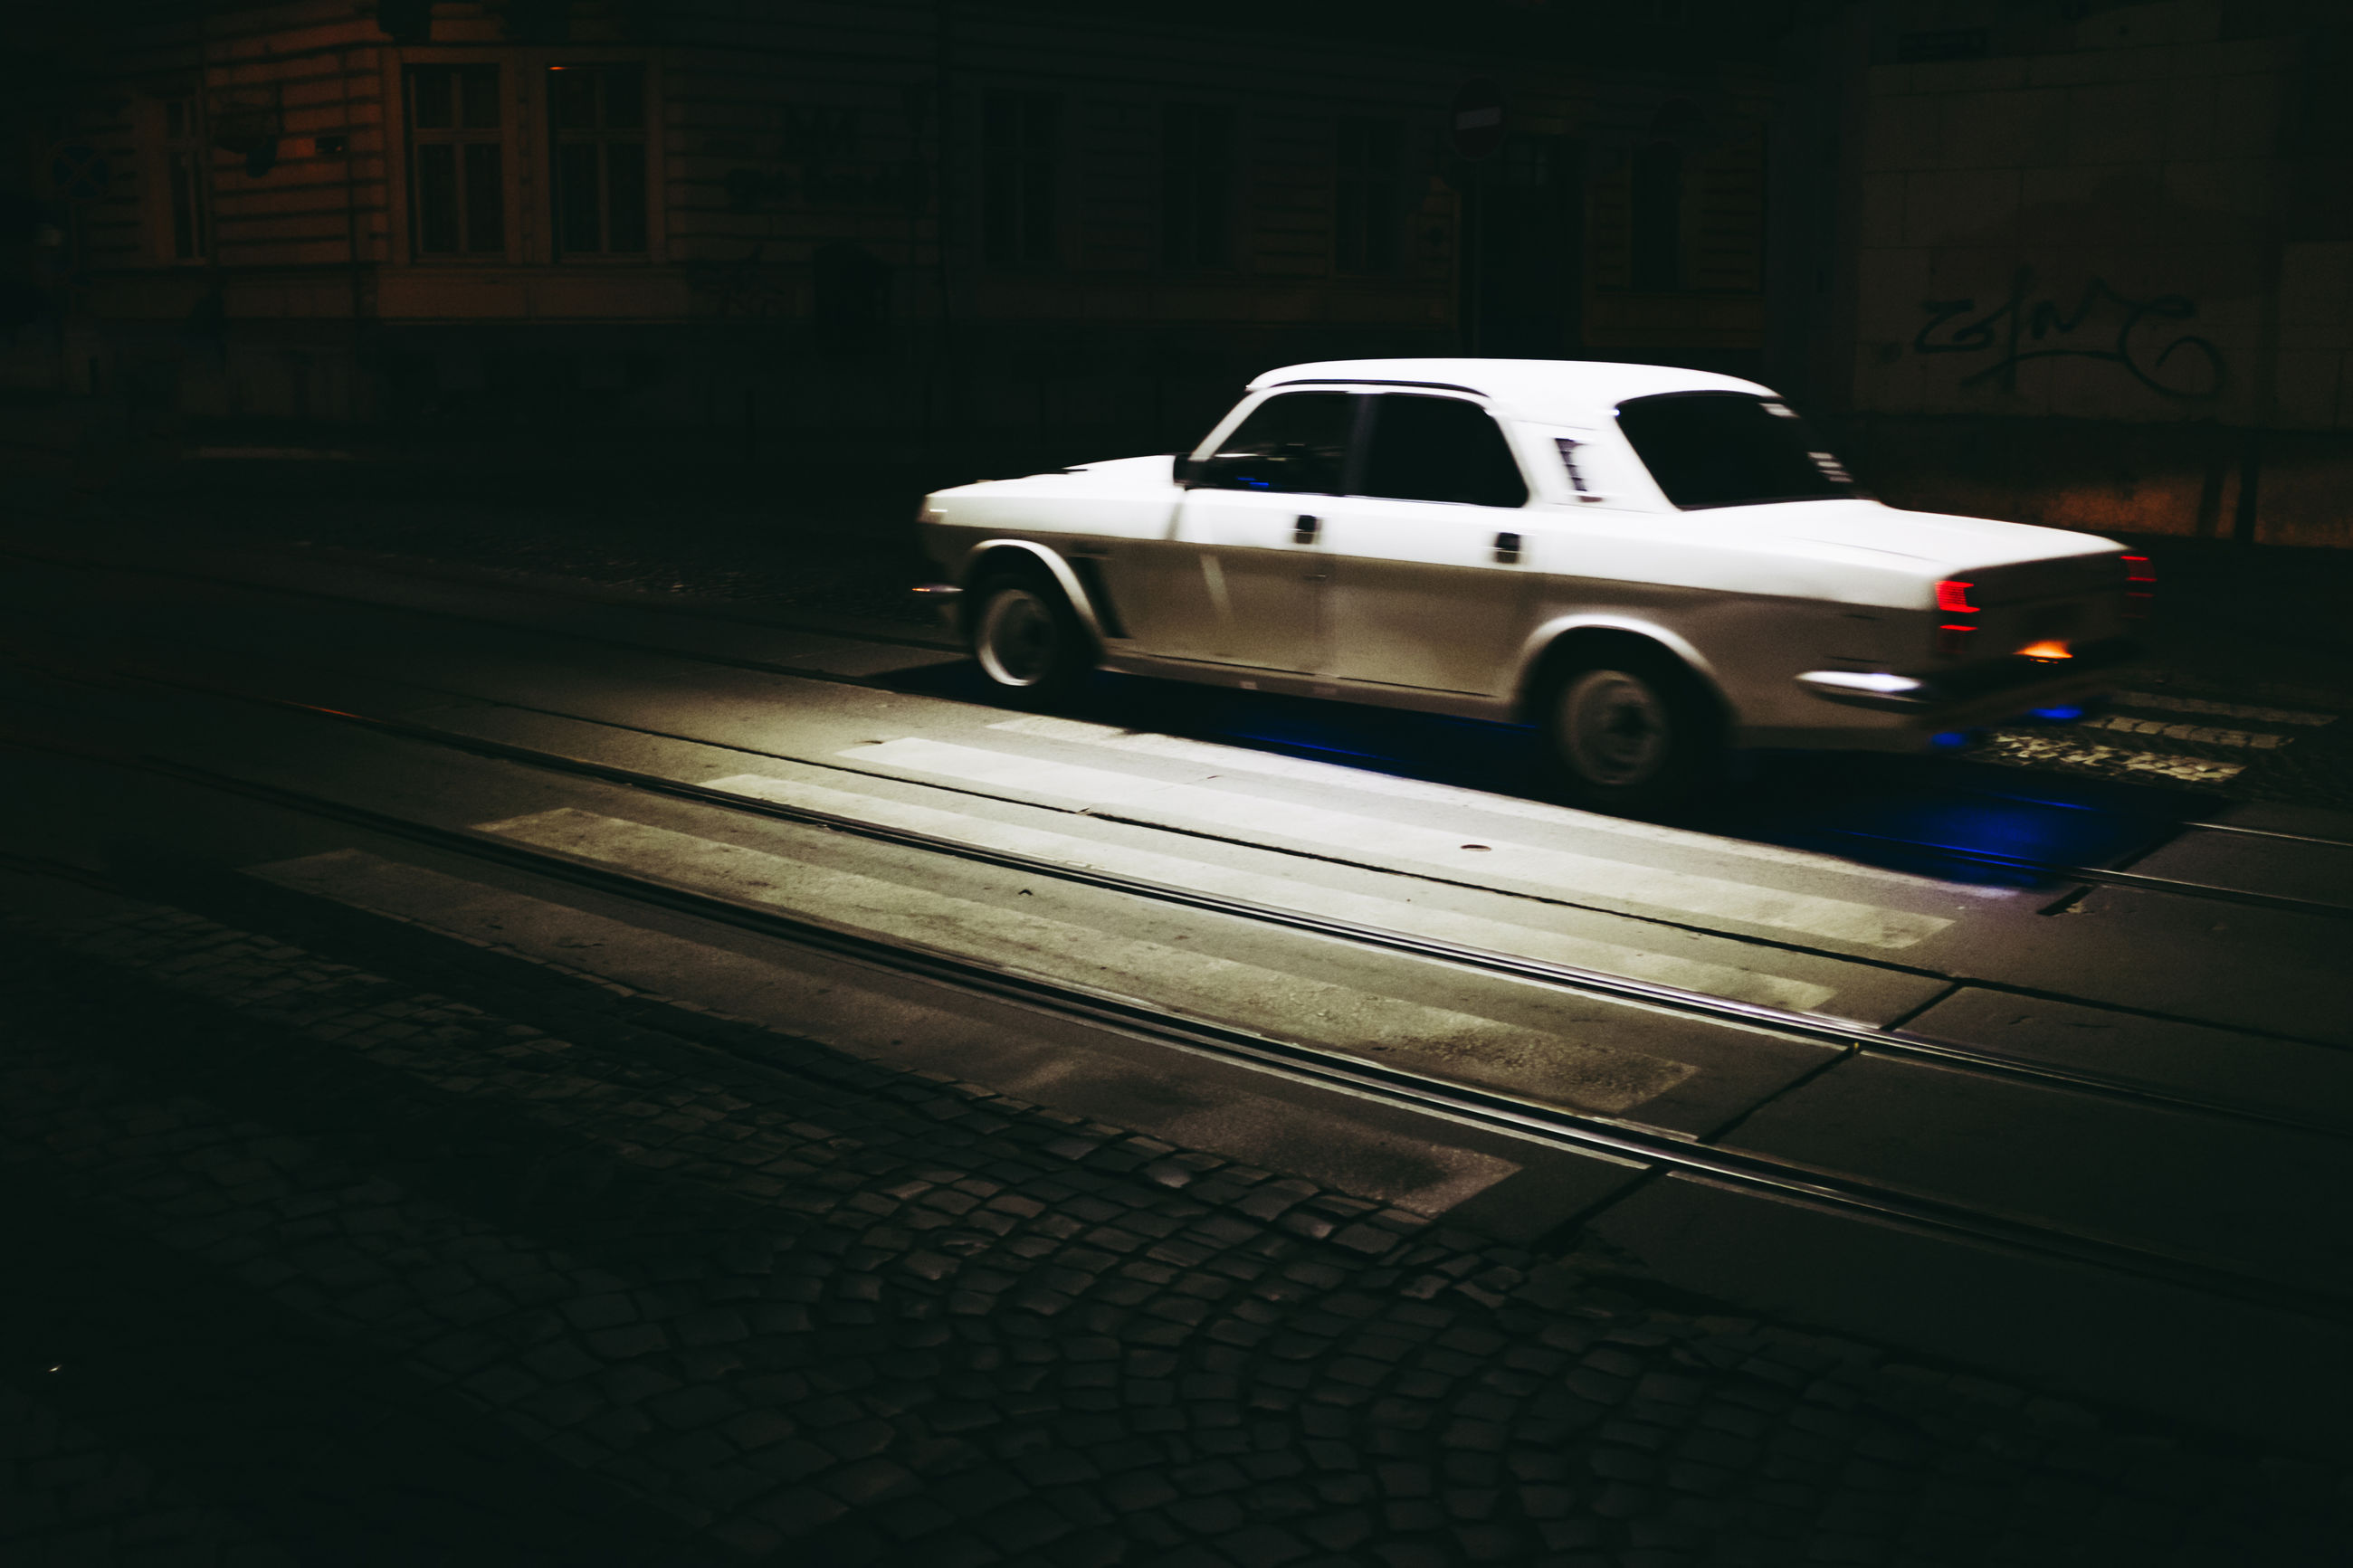 transportation, car, city, no people, architecture, outdoors, night